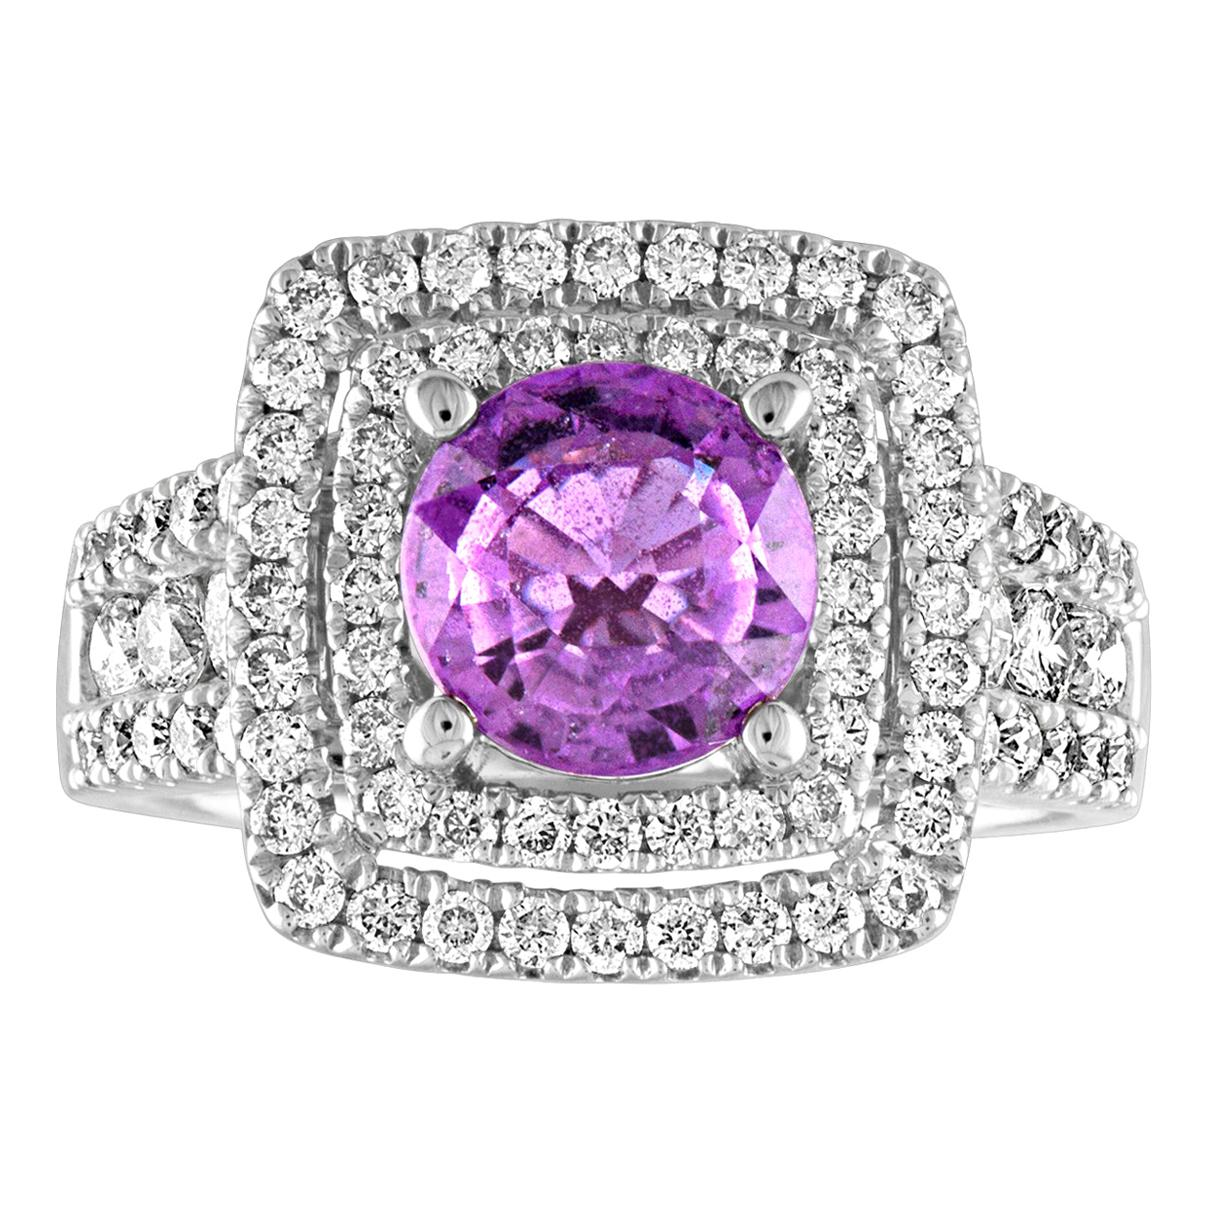 Certified No Heat 1.97 Carat Pinkish Violet Sapphire Diamond Gold Ring